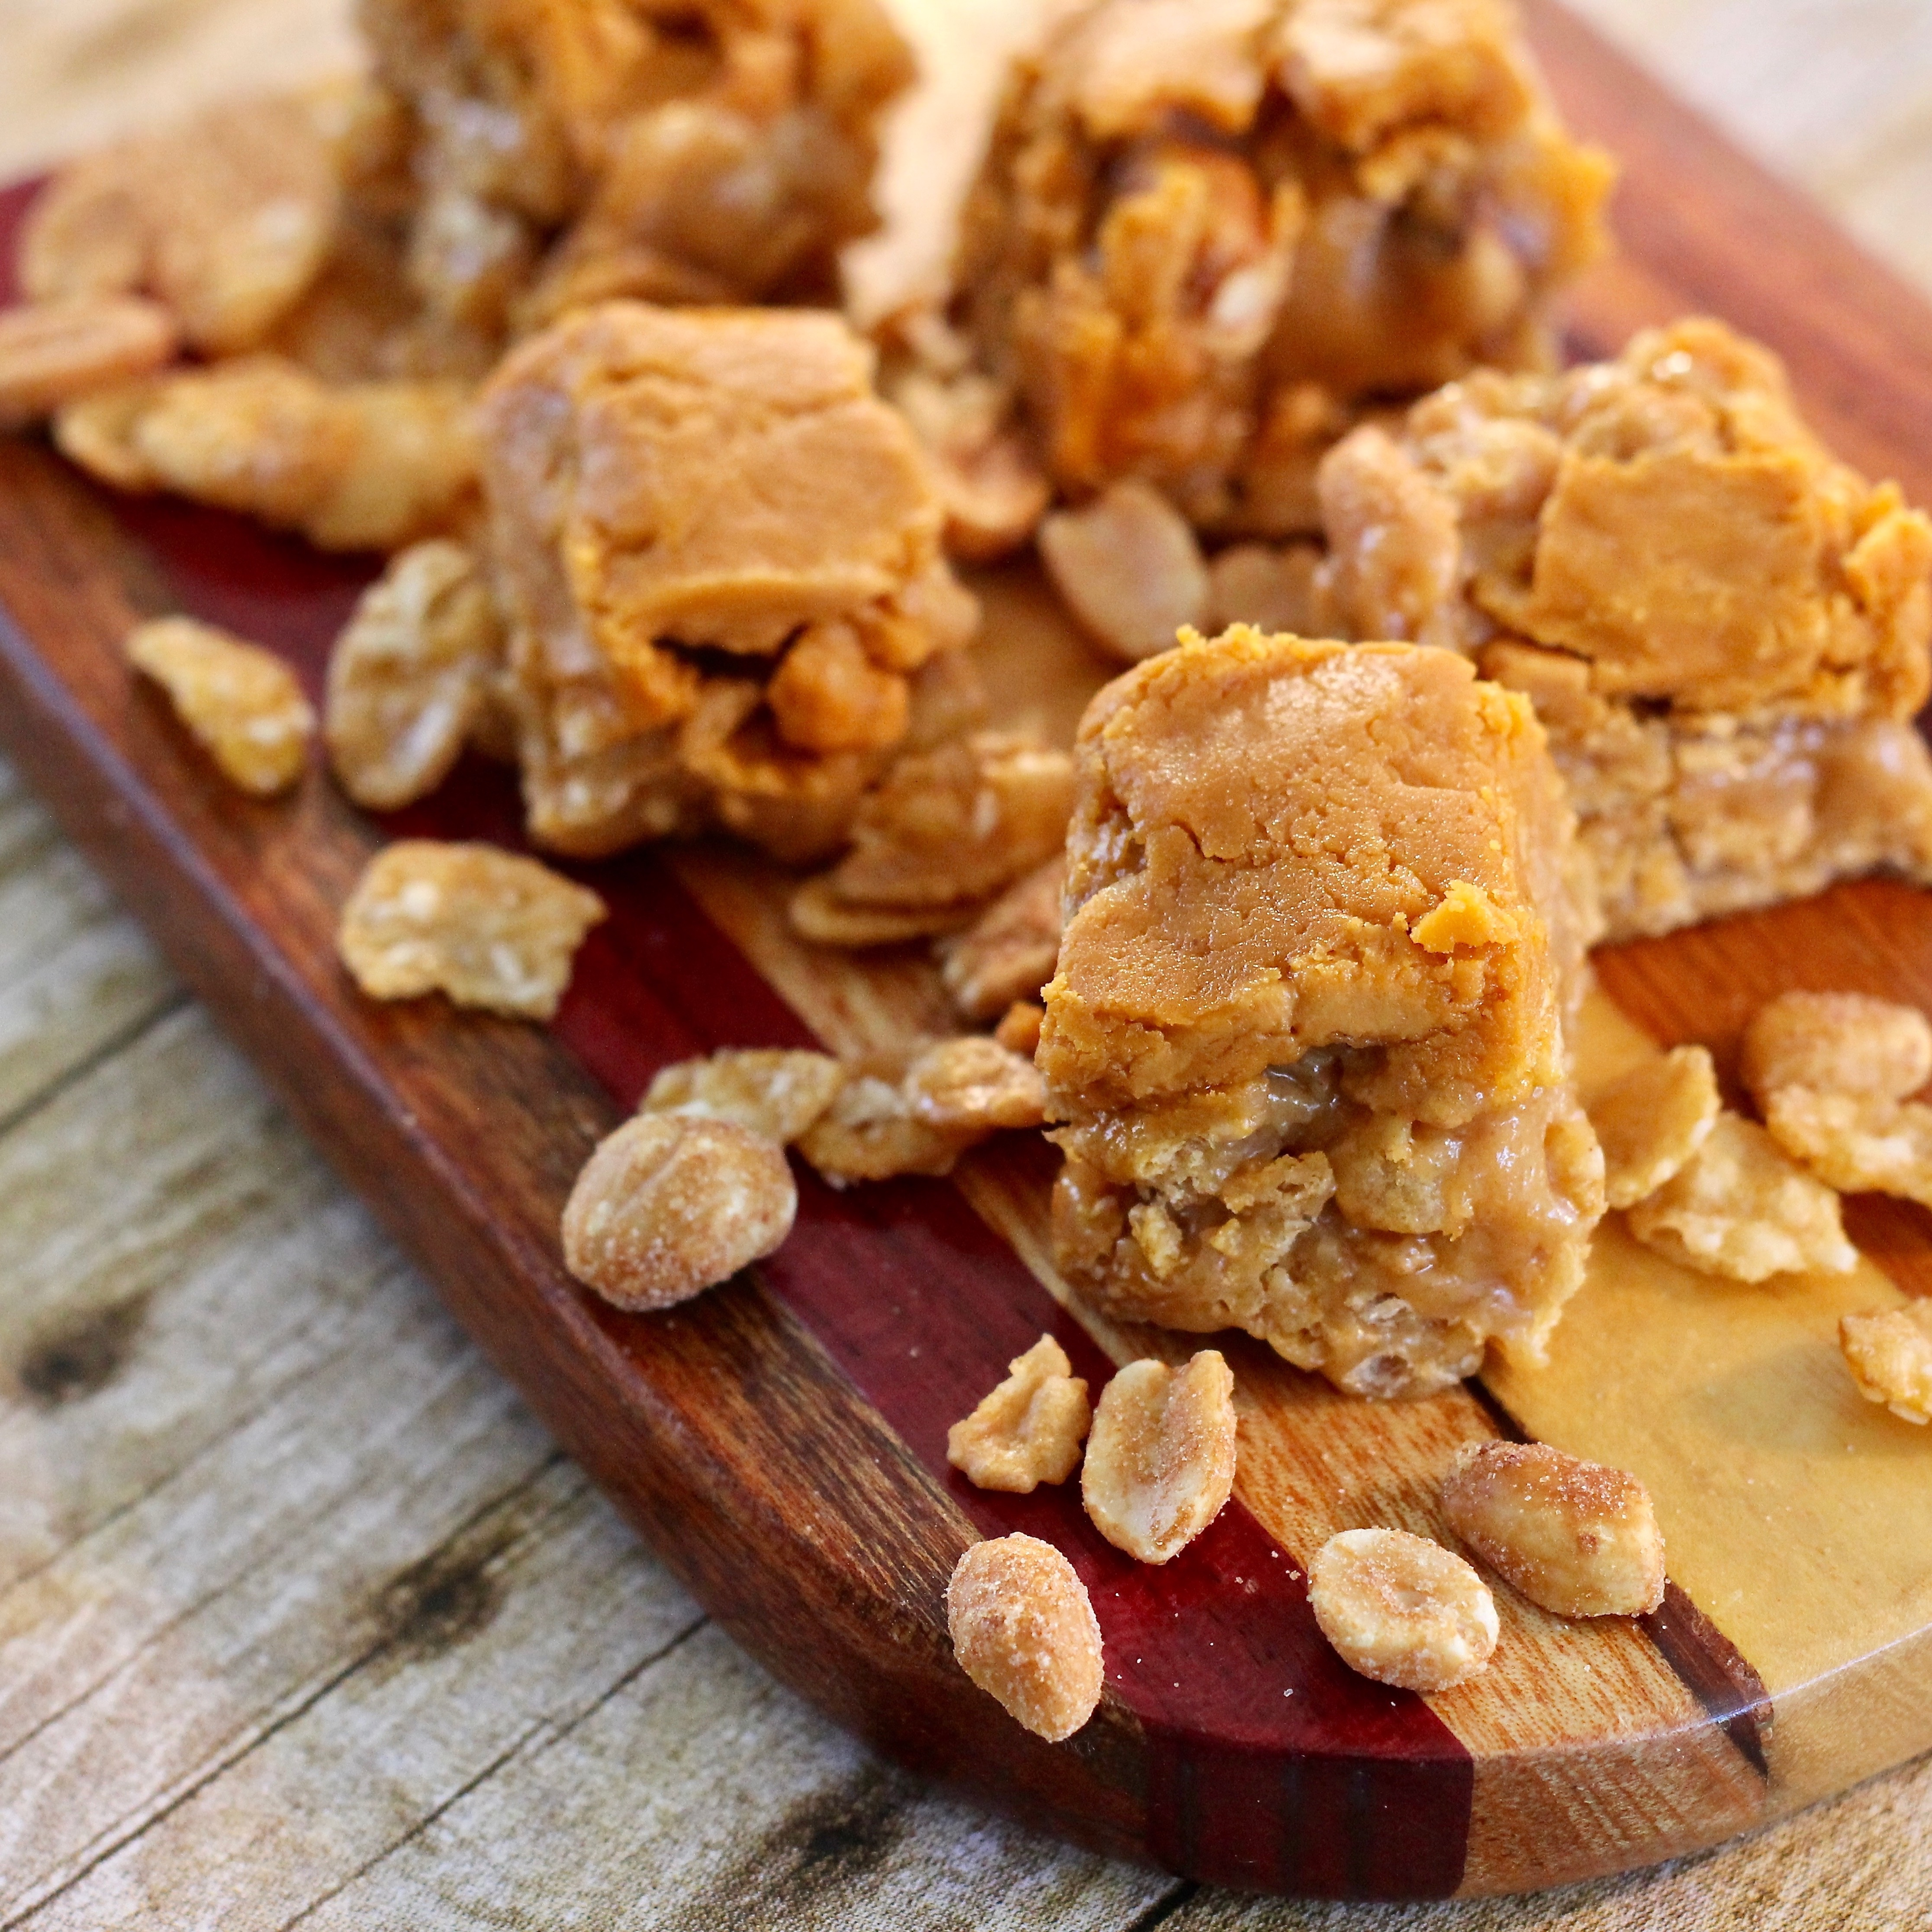 "These golden gems are packed with peanut butter, peanuts, butterscotch chips and of course, cornflakes. Recipe creator Susan Hignight shares, ""This has been a longtime family favorite. Very easy to make and a great choice for peanut butter lovers. The lighter you press the mixture into the pan, the more tender the candy will be."""